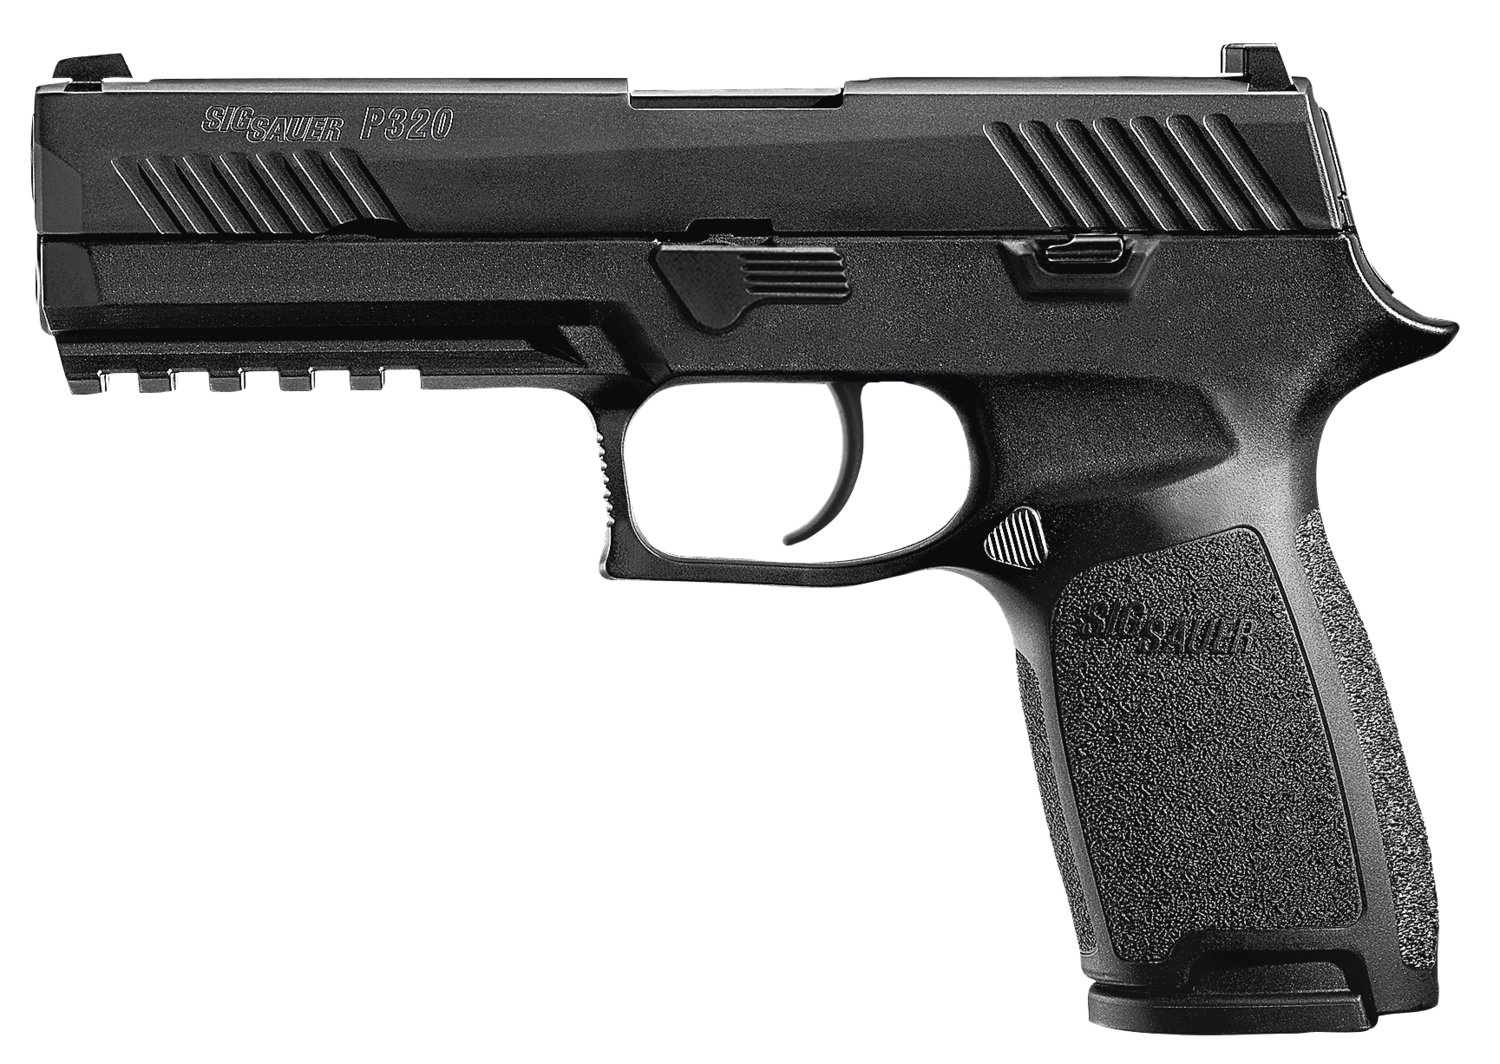 """80% Sig Sauer - P320 Full Size 9mm Luger Double 4.7"""" 10+1 - 2 Mags - Black Polymer Grip Black Stainless Steel Frame - Black Nitron Stainless Steel Slide"""